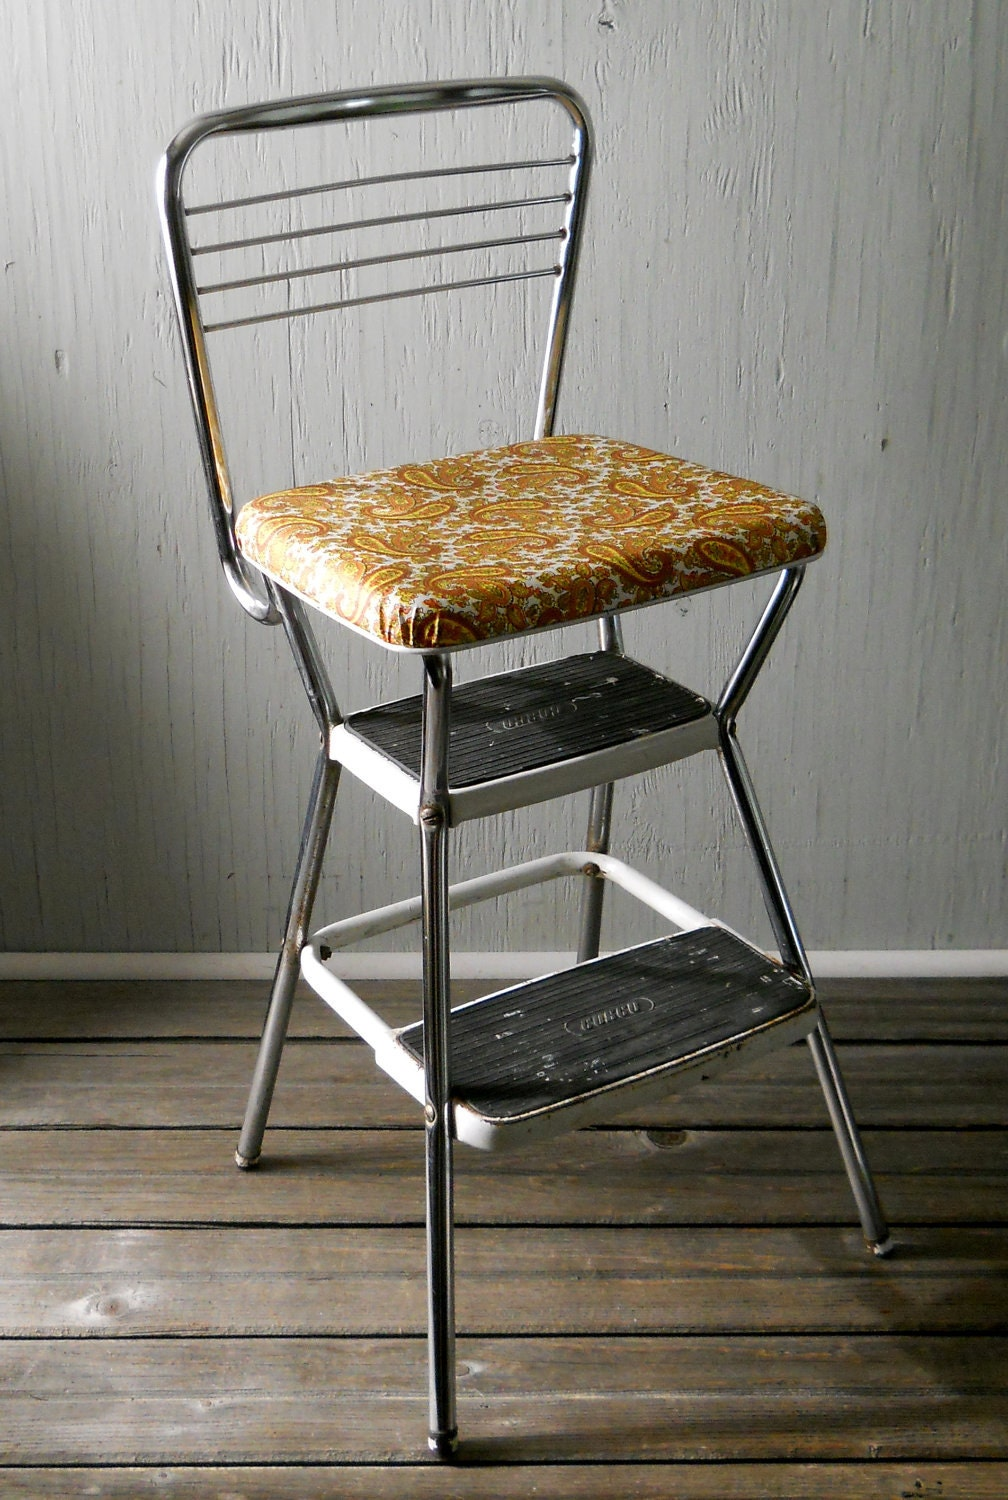 Cosco step stool chair -  Zoom